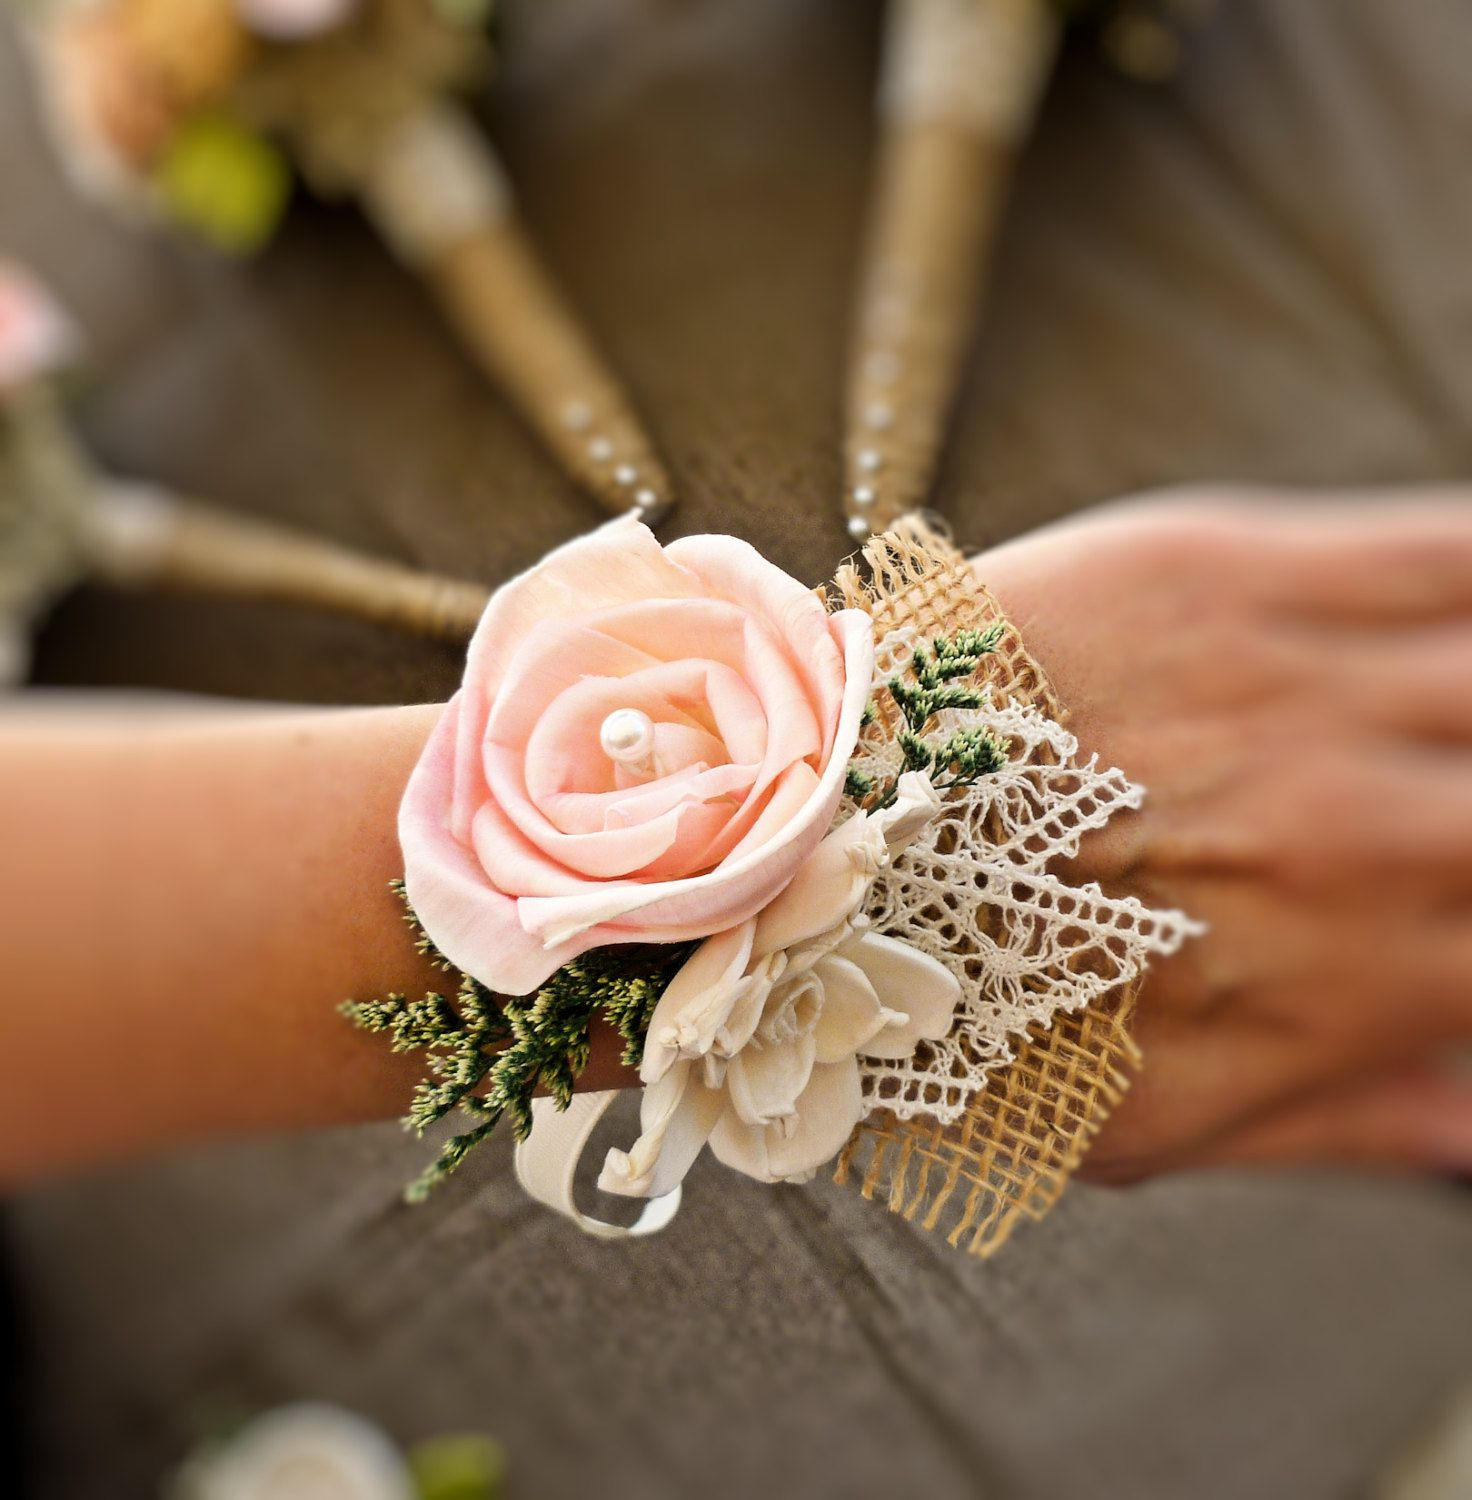 Romantic Wedding Corsage Mother Of The Bride Natural Wedding Shabby Chic Rustic Wedding 18 00 Via Etsy Corsage Wedding Diy Wrist Corsage Nature Wedding